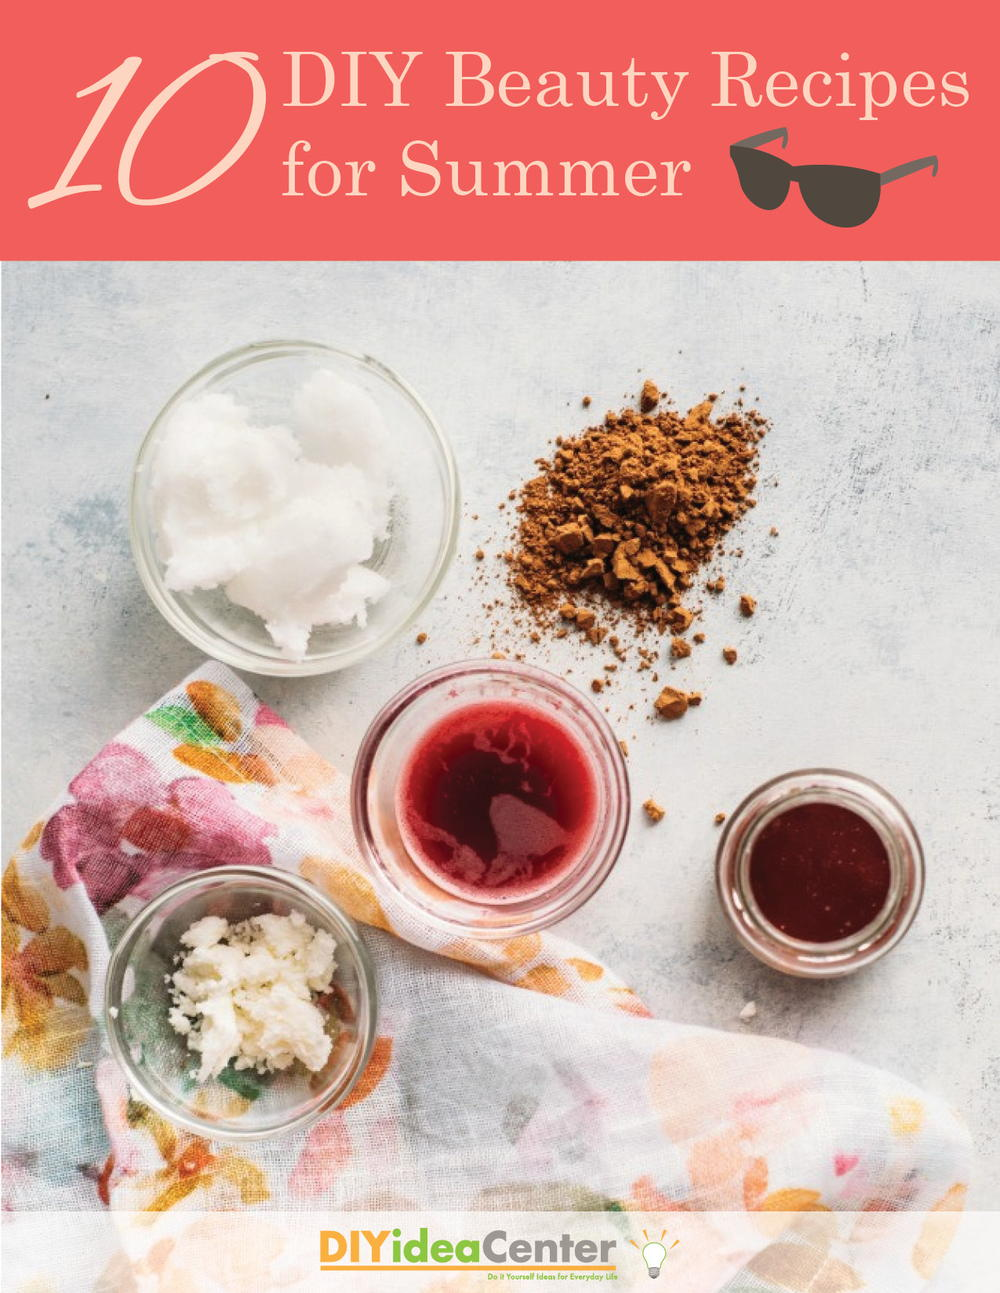 10 Diy Beauty Recipes For Summer Diyideacenter Com